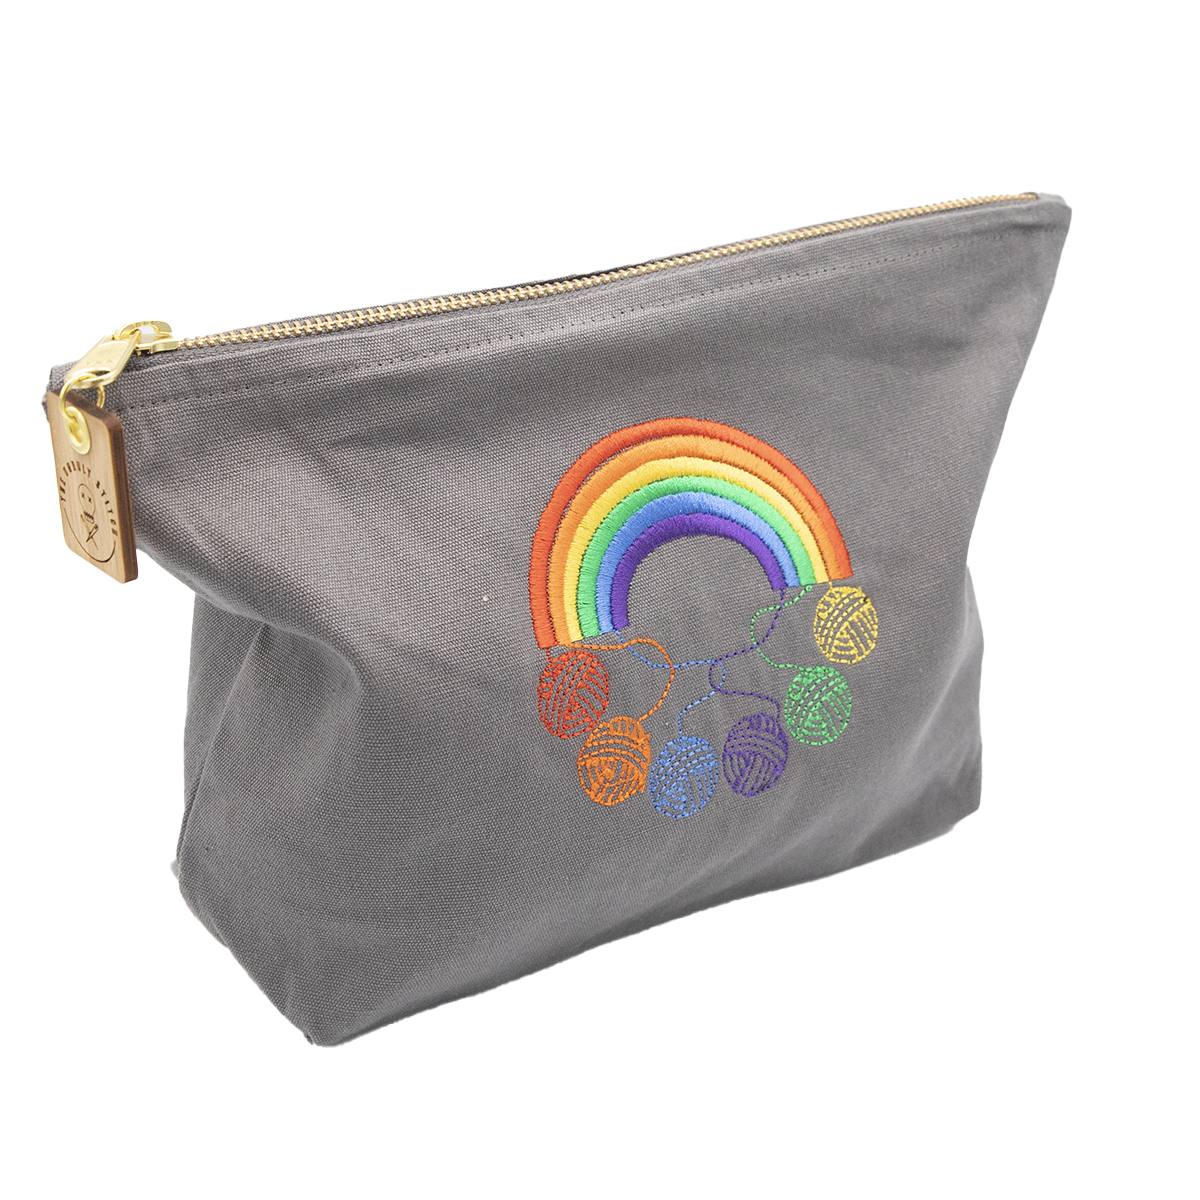 embroidered cotton pouch bag - rainbows and balls of yarn